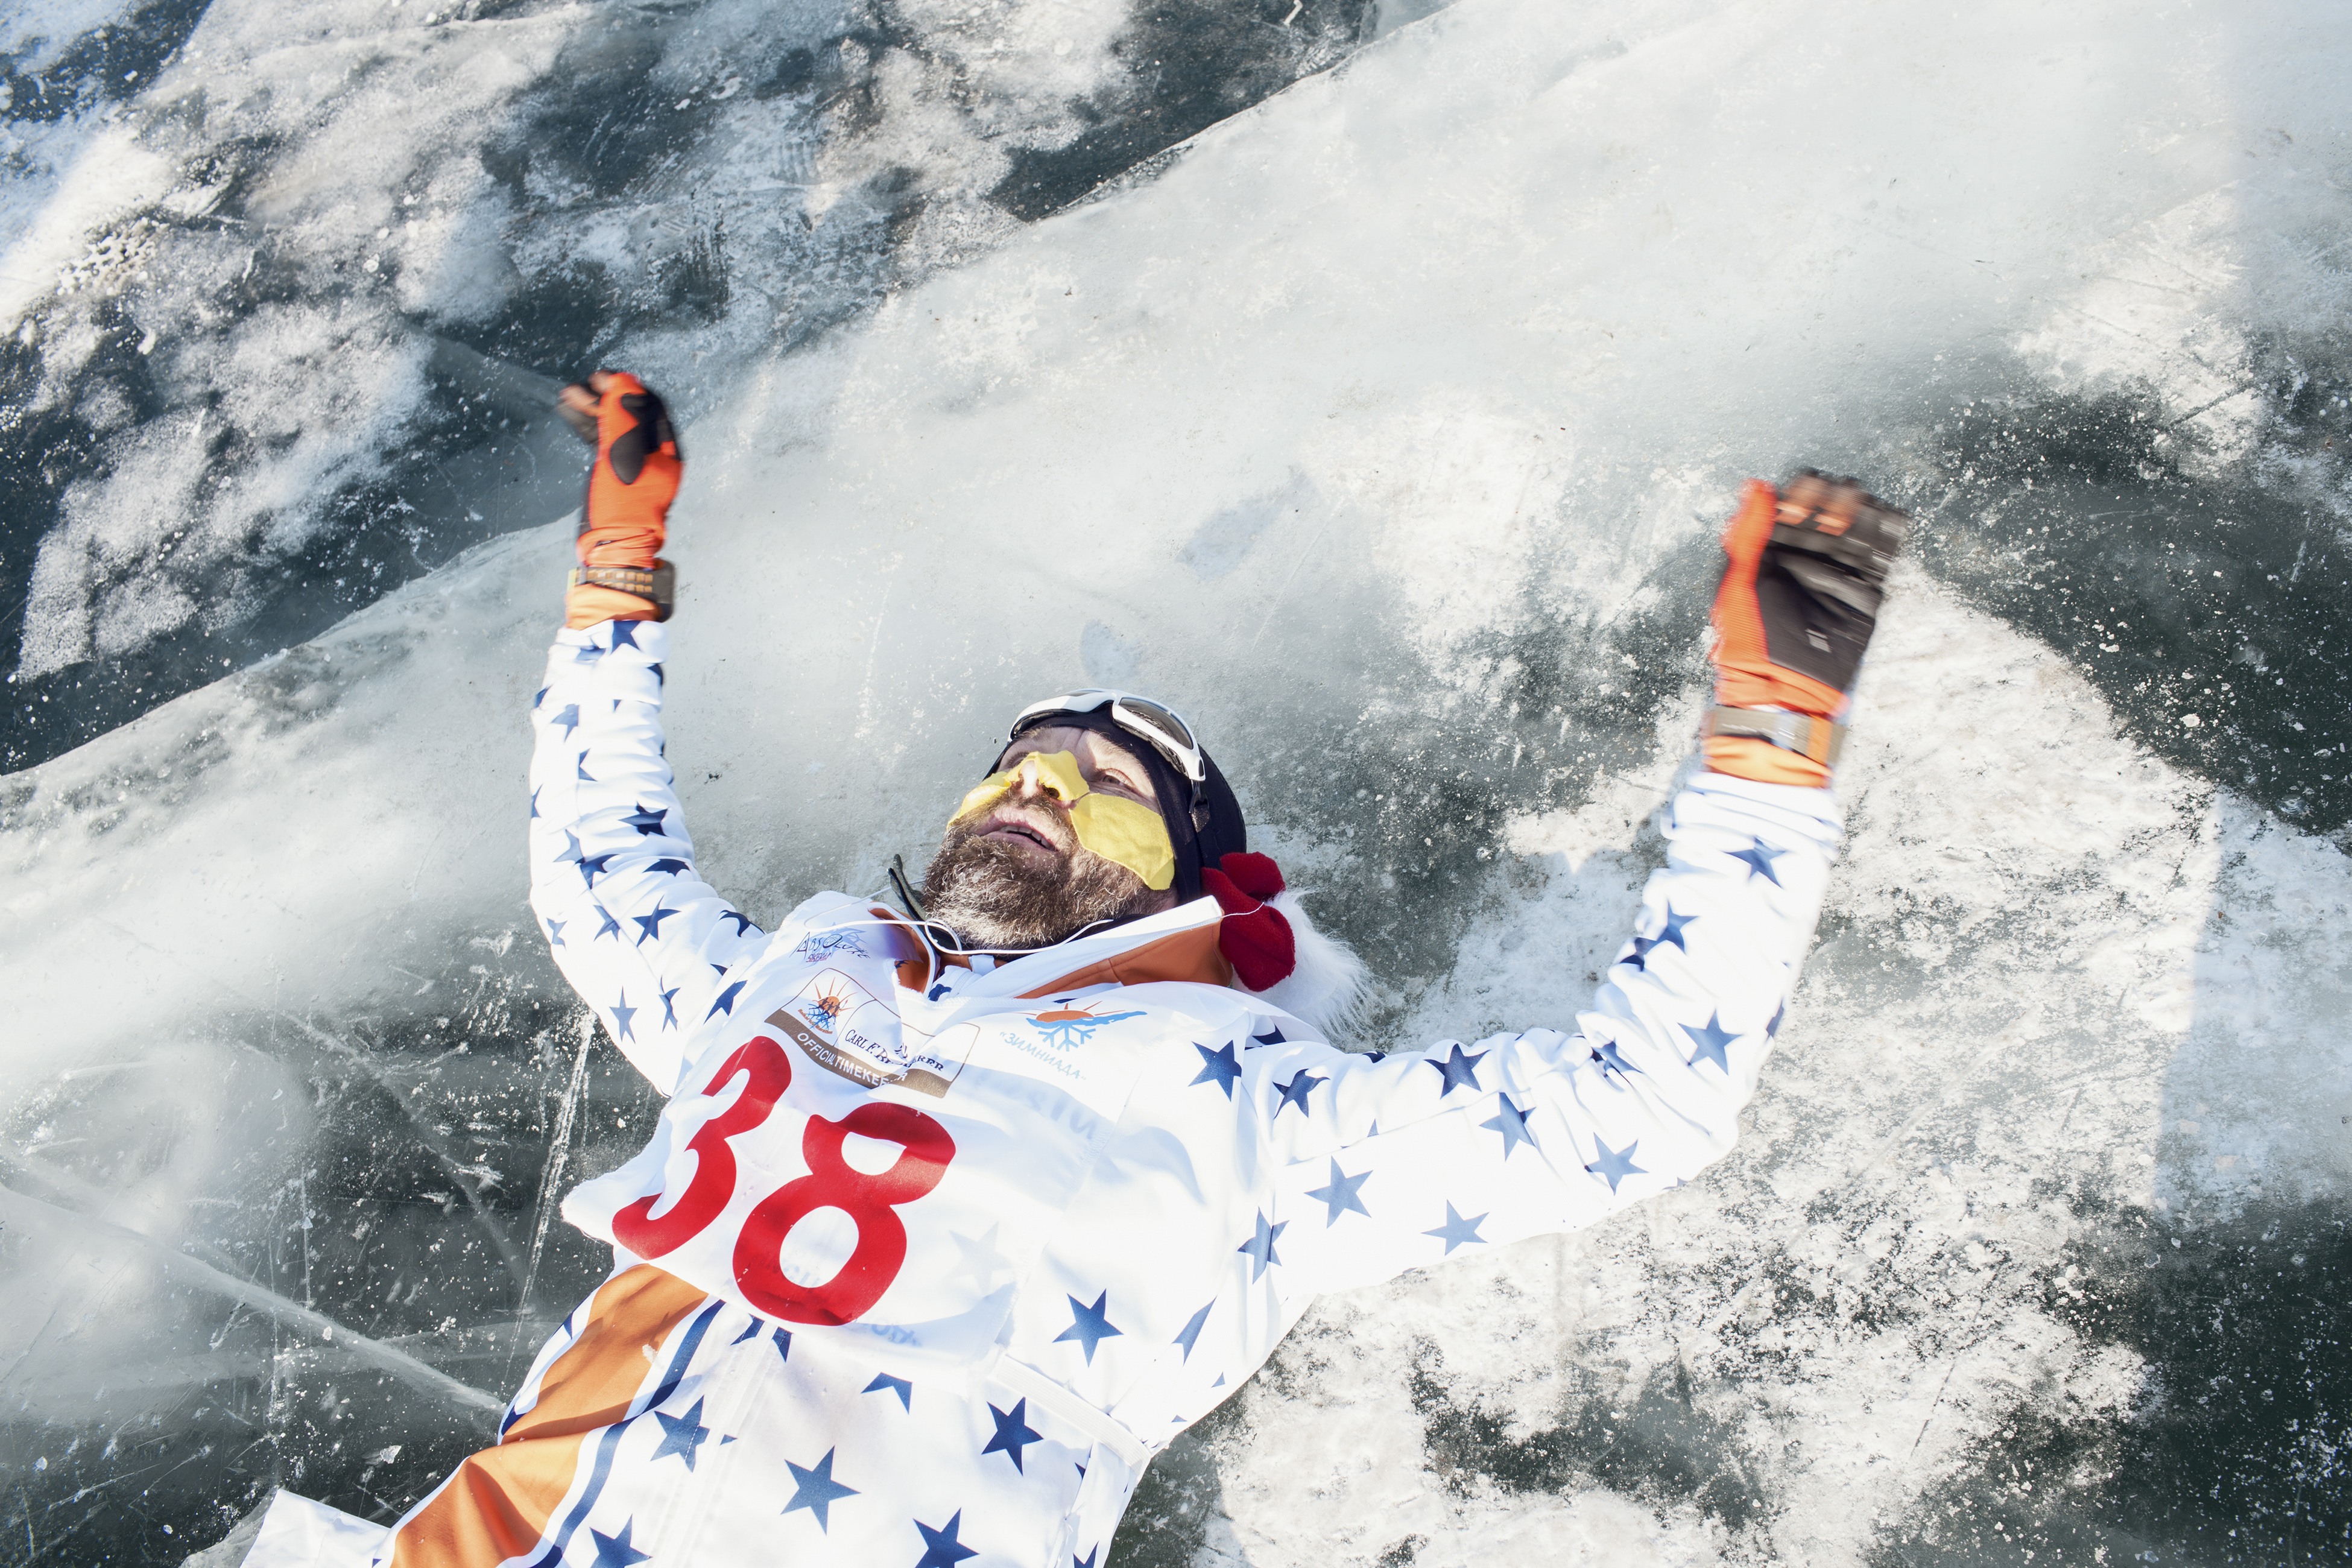 Oskar Szkudlo, a runner from Poland, lies down on the frozen surface of Lake Baikal after finishing the ice marathon on March 2, 2019.